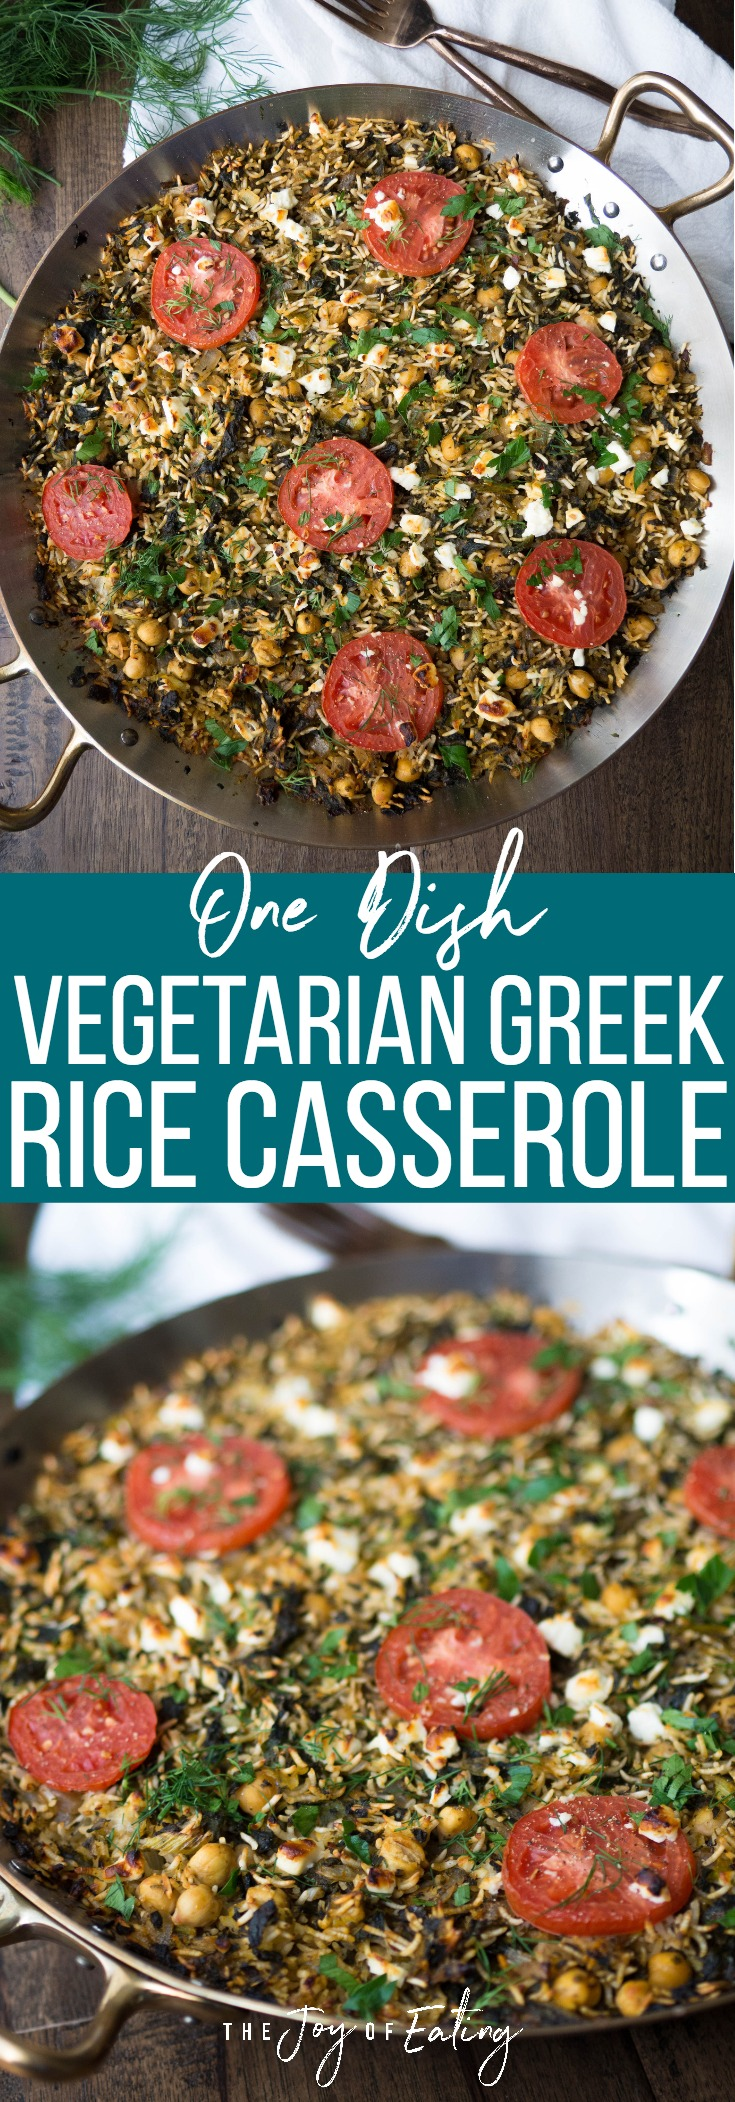 This vegetarian Greek rice casserole is made in one dish! Just bake rice with chickpeas, spinach, sauteed garlic and onions, tons of fresh herbs and lemon! Top it off with feta cheese! #greekrecipe #onedish #easyrecipe #vegetarian #healthyrecipe #chickpea